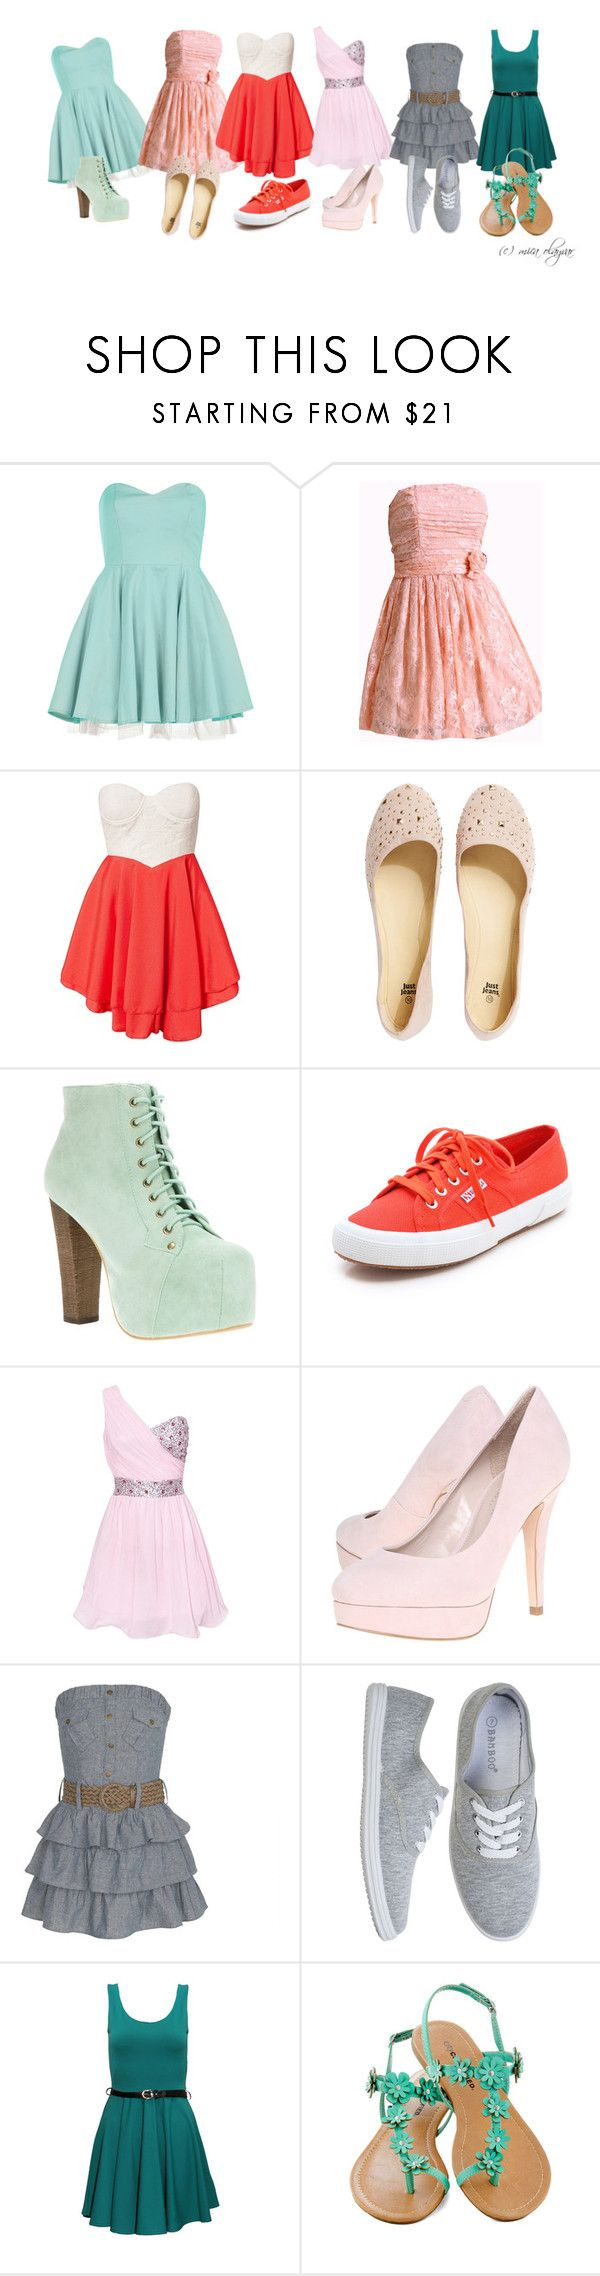 #1 by micaolayvar on Polyvore featuring Dorothy Perkins, Club L, Superga, Carvela and Jeffrey Campbell